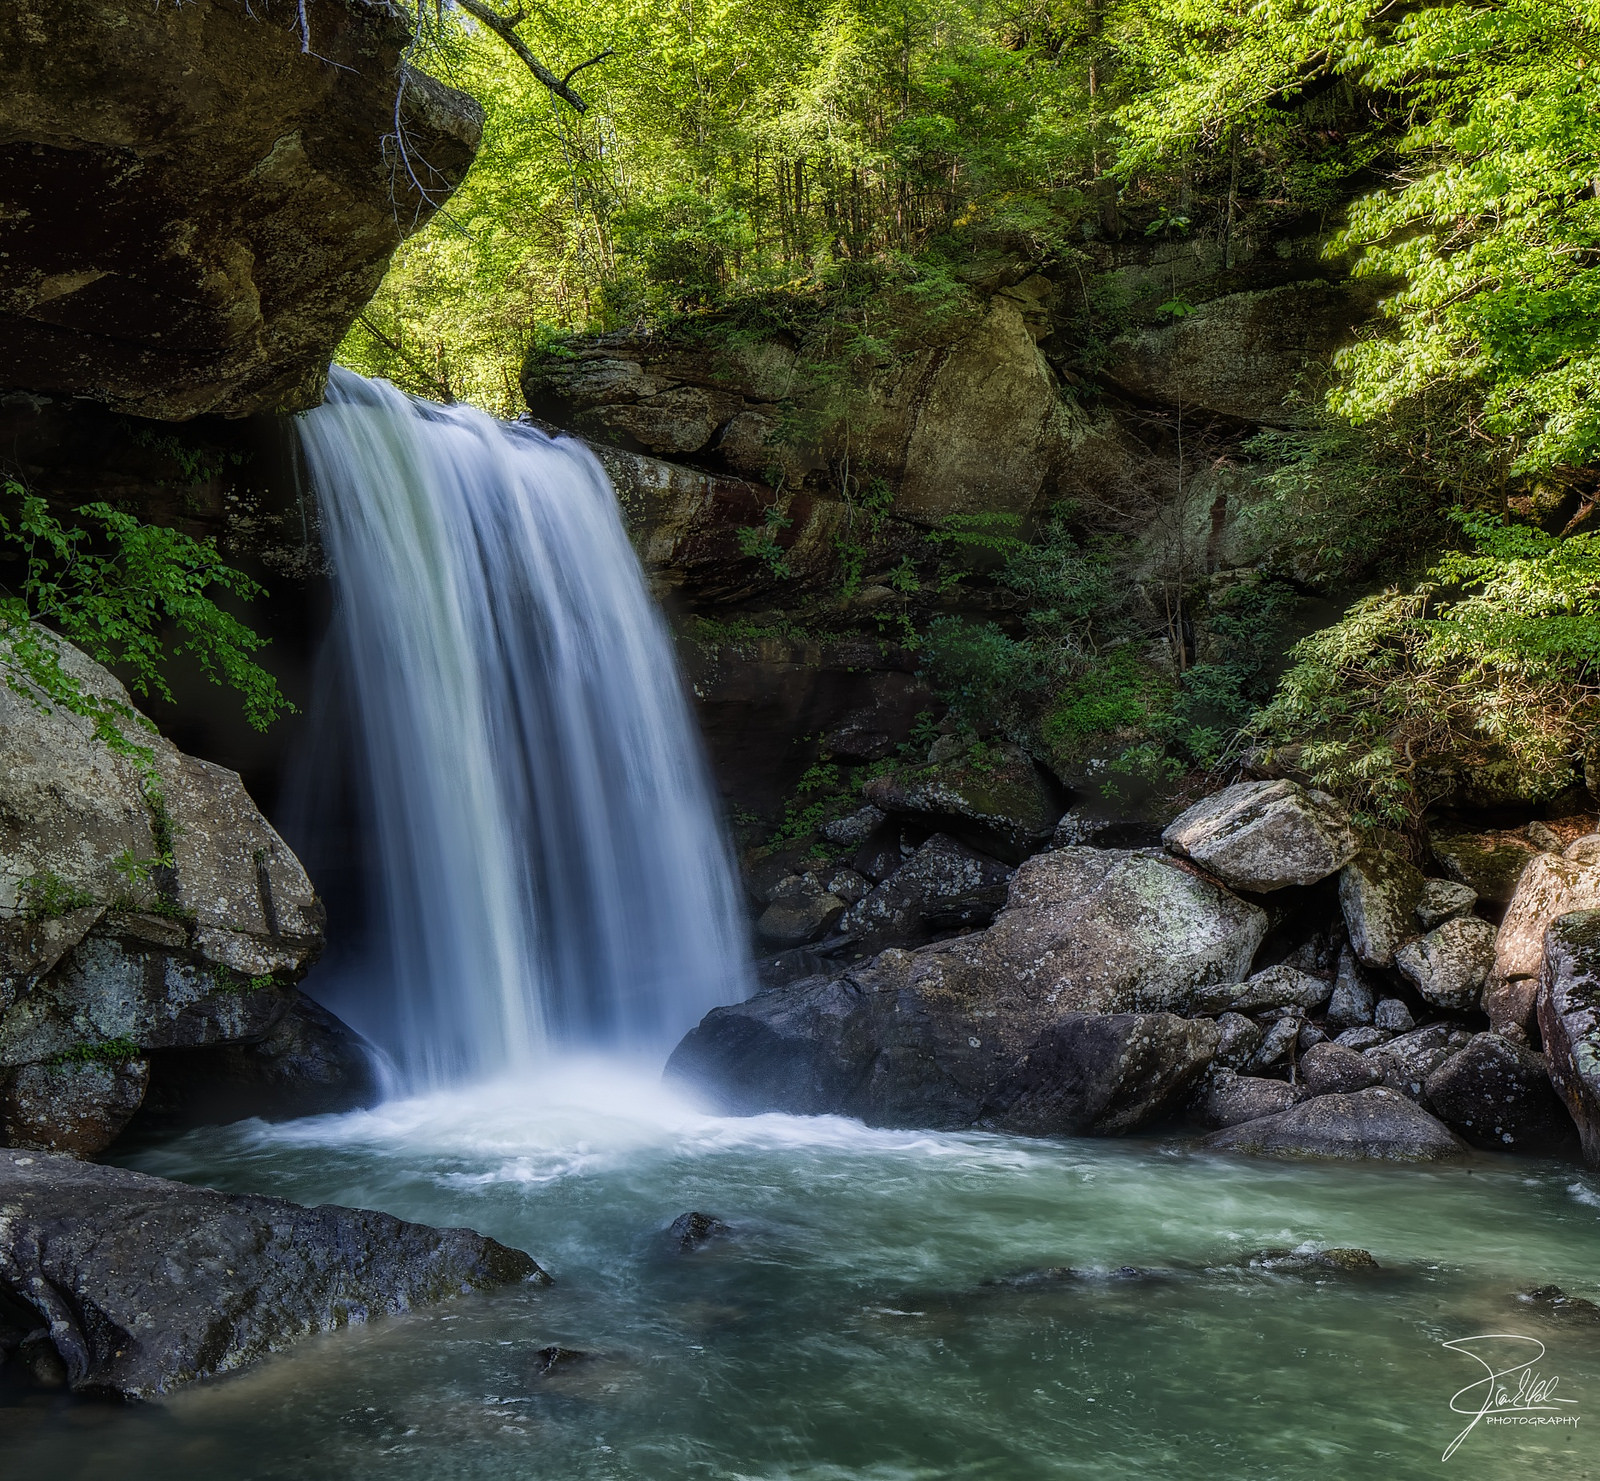 Places To Visit In Northern Ky: Majestical Waterfalls In Kentucky That Will Make Your Jaw Drop